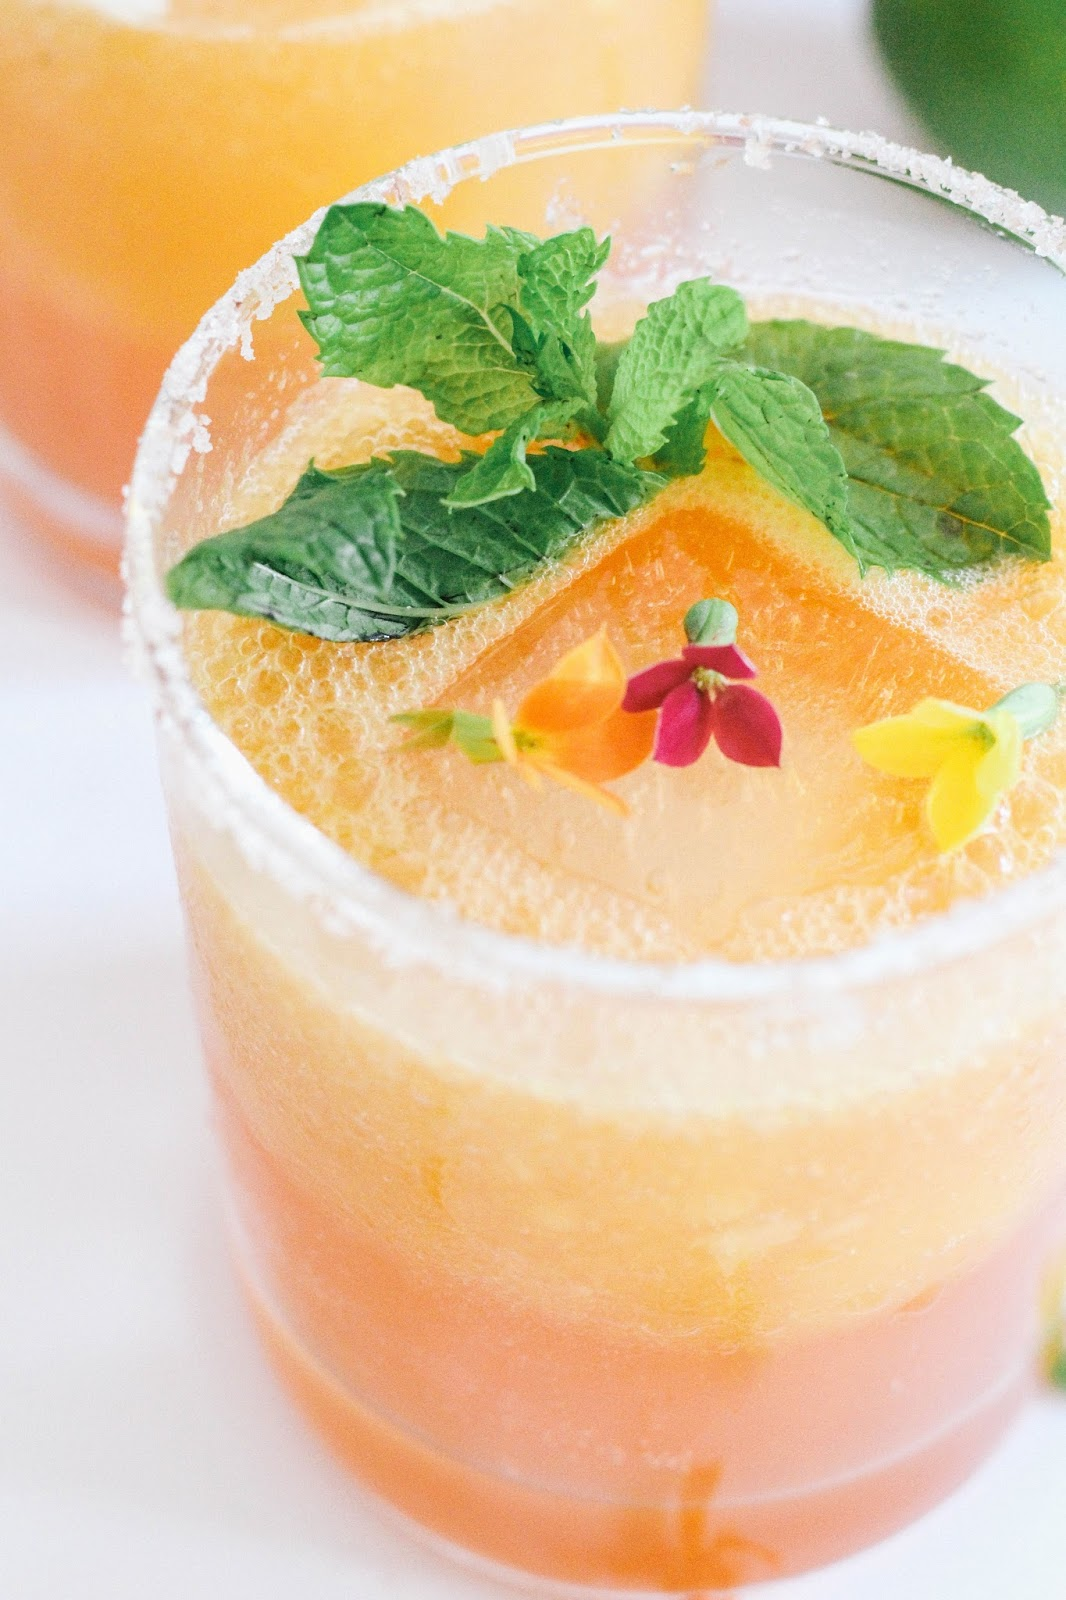 August is National Peach Month and there is no better way to enjoy this fruit than in this delicious margarita!